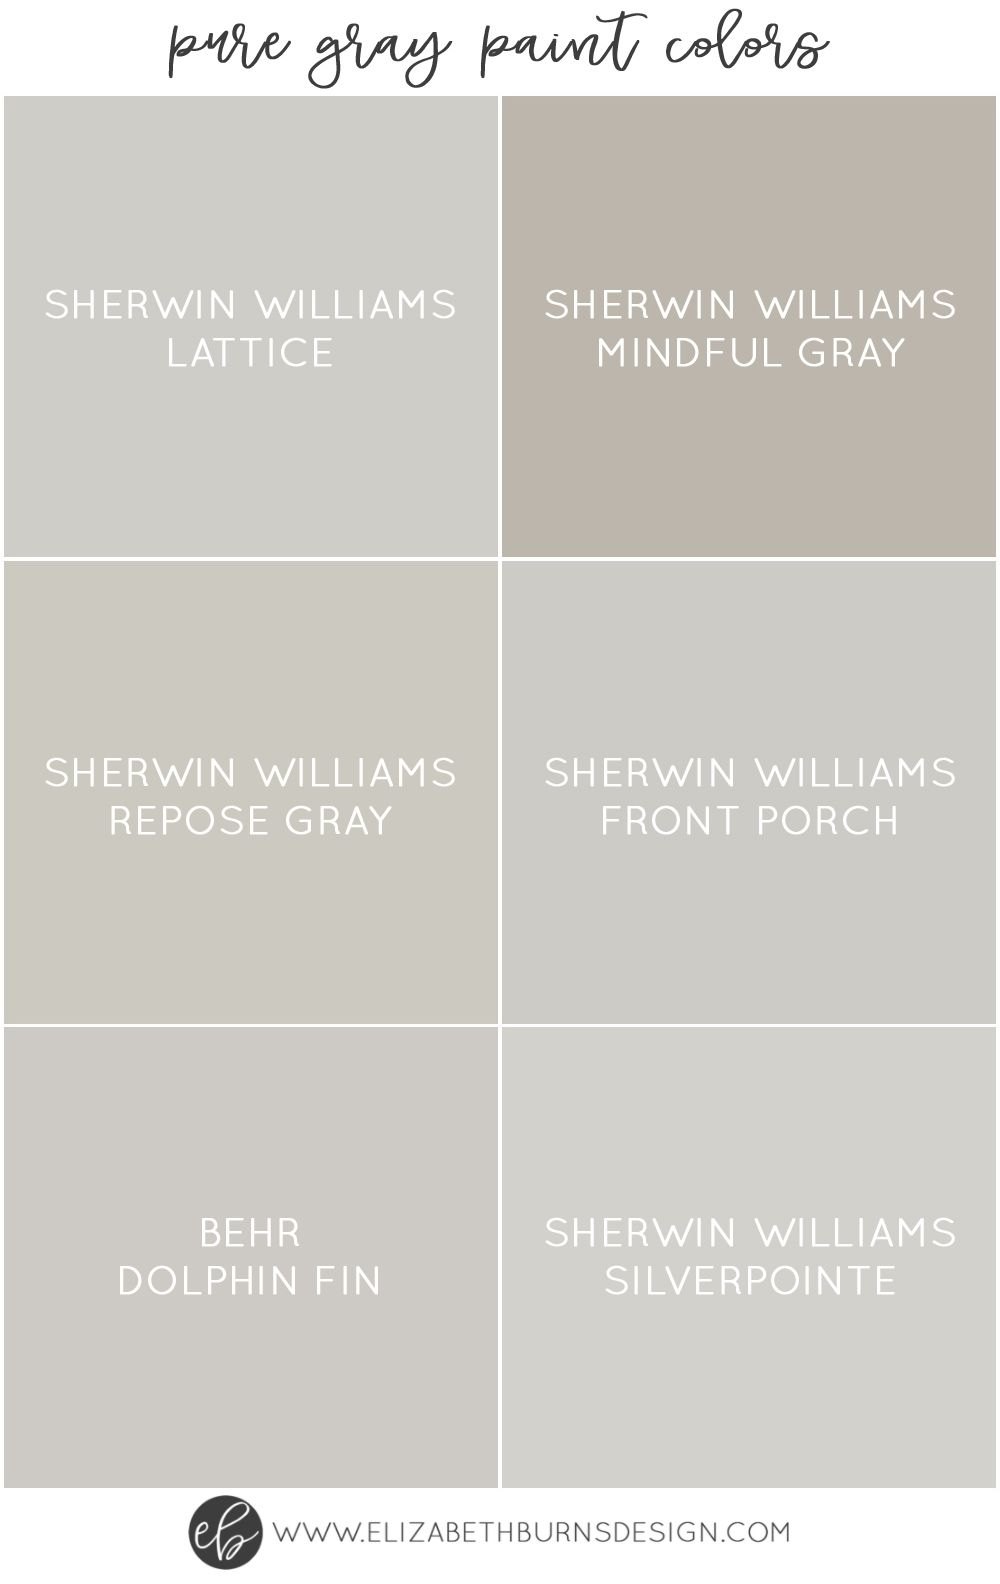 The Best Pure Grey Paint Colors Paint Guide Elizabeth Burns Design Raleigh Nc Interior Designer Grey Paint Colors Paint Colors For Home Gray Paint Colors Sherwin Williams